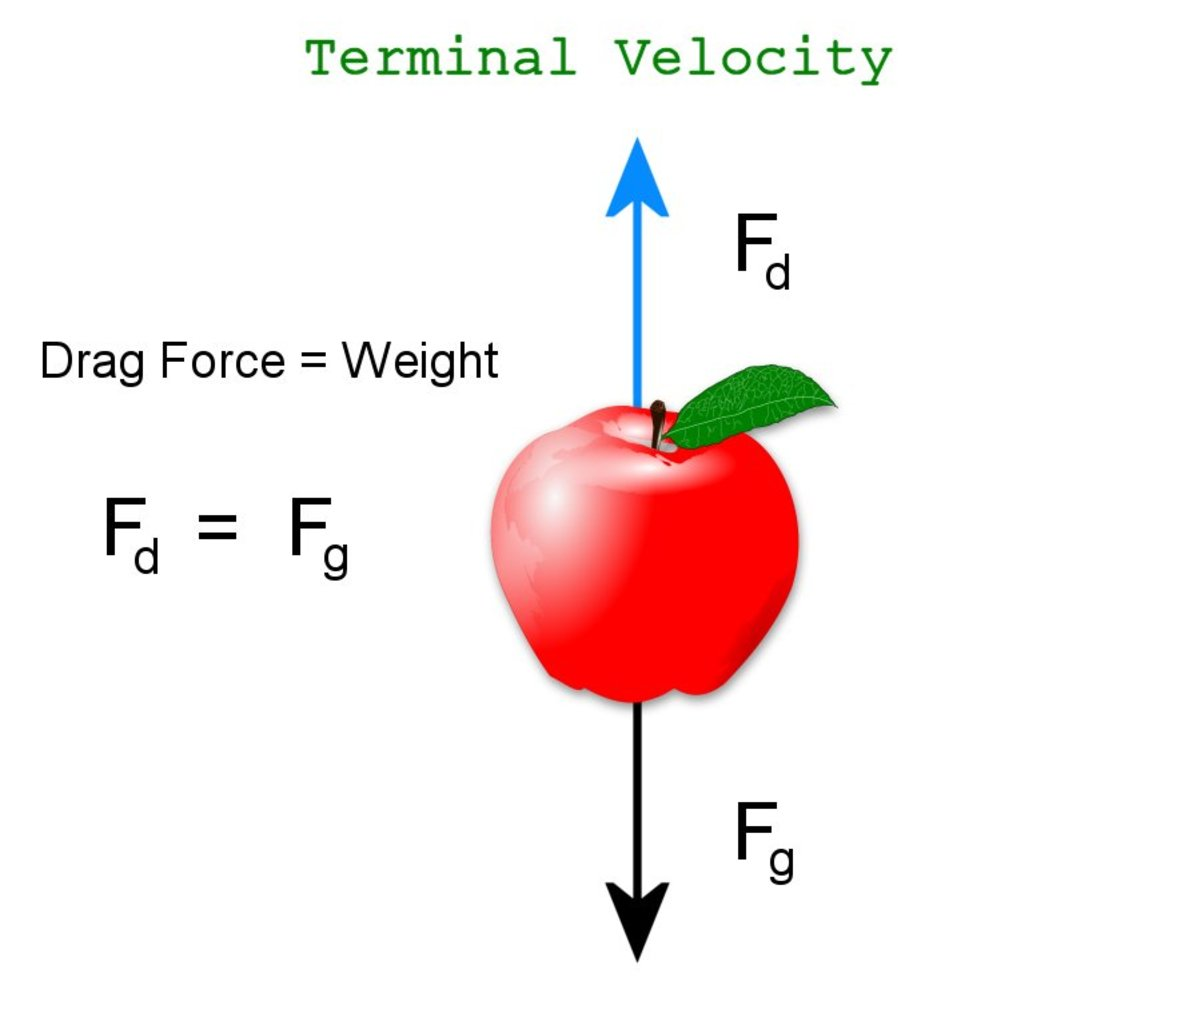 As velocity increases, the drag force acting upwards eventually equals the force of gravity acting downwards, the net force becomes zero and an object no longer accelerates. It has reached terminal velocity.